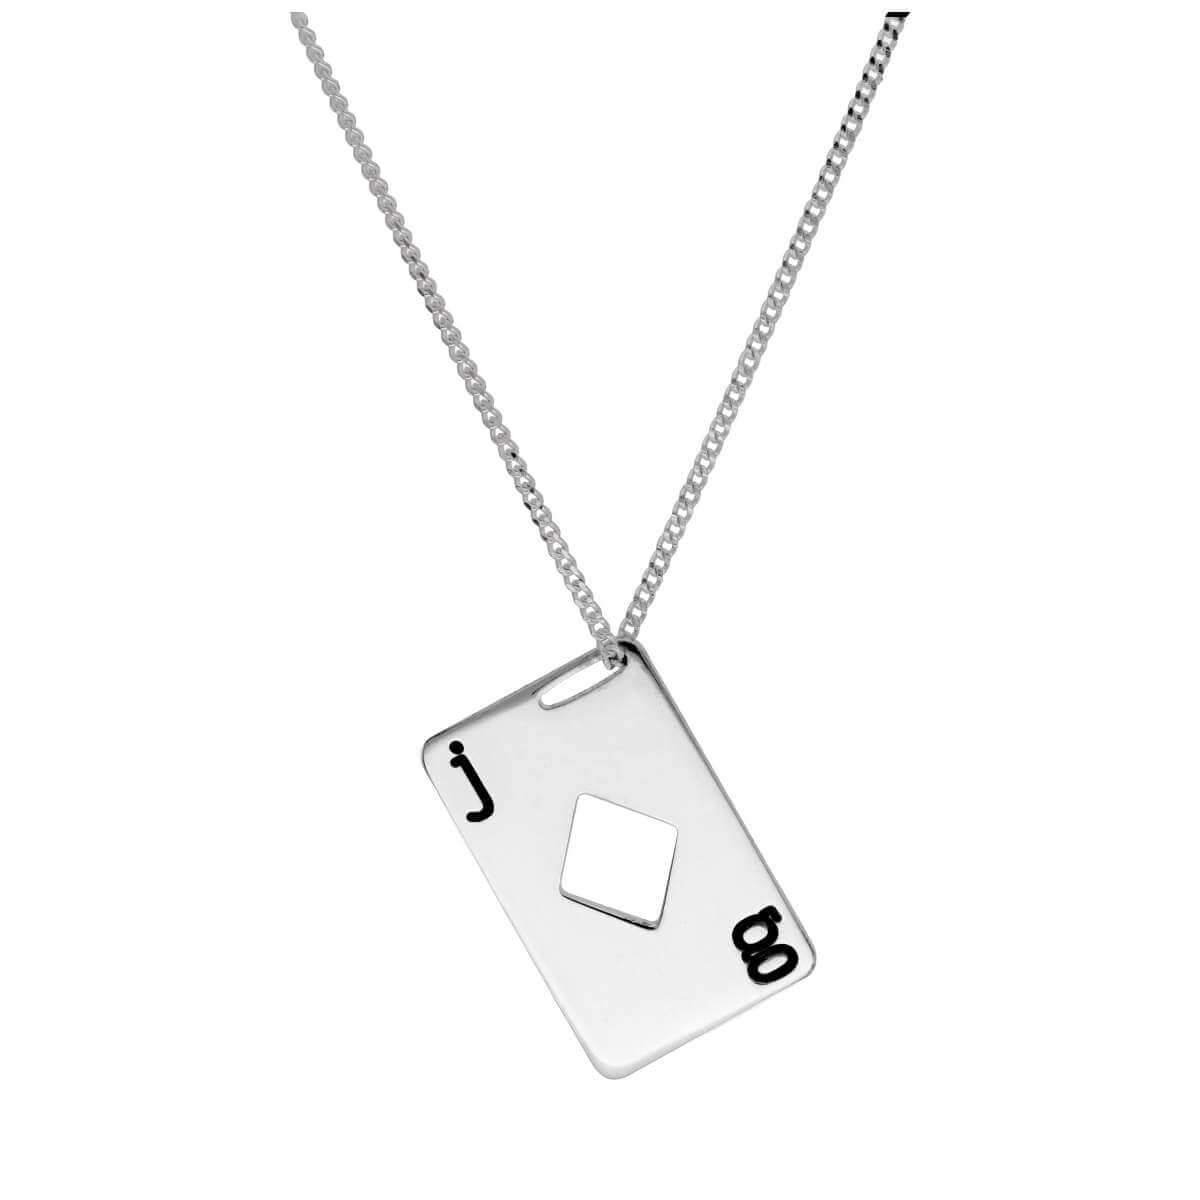 Bespoke Sterling Silver Diamonds Playing Card Necklace 14-32 Inches